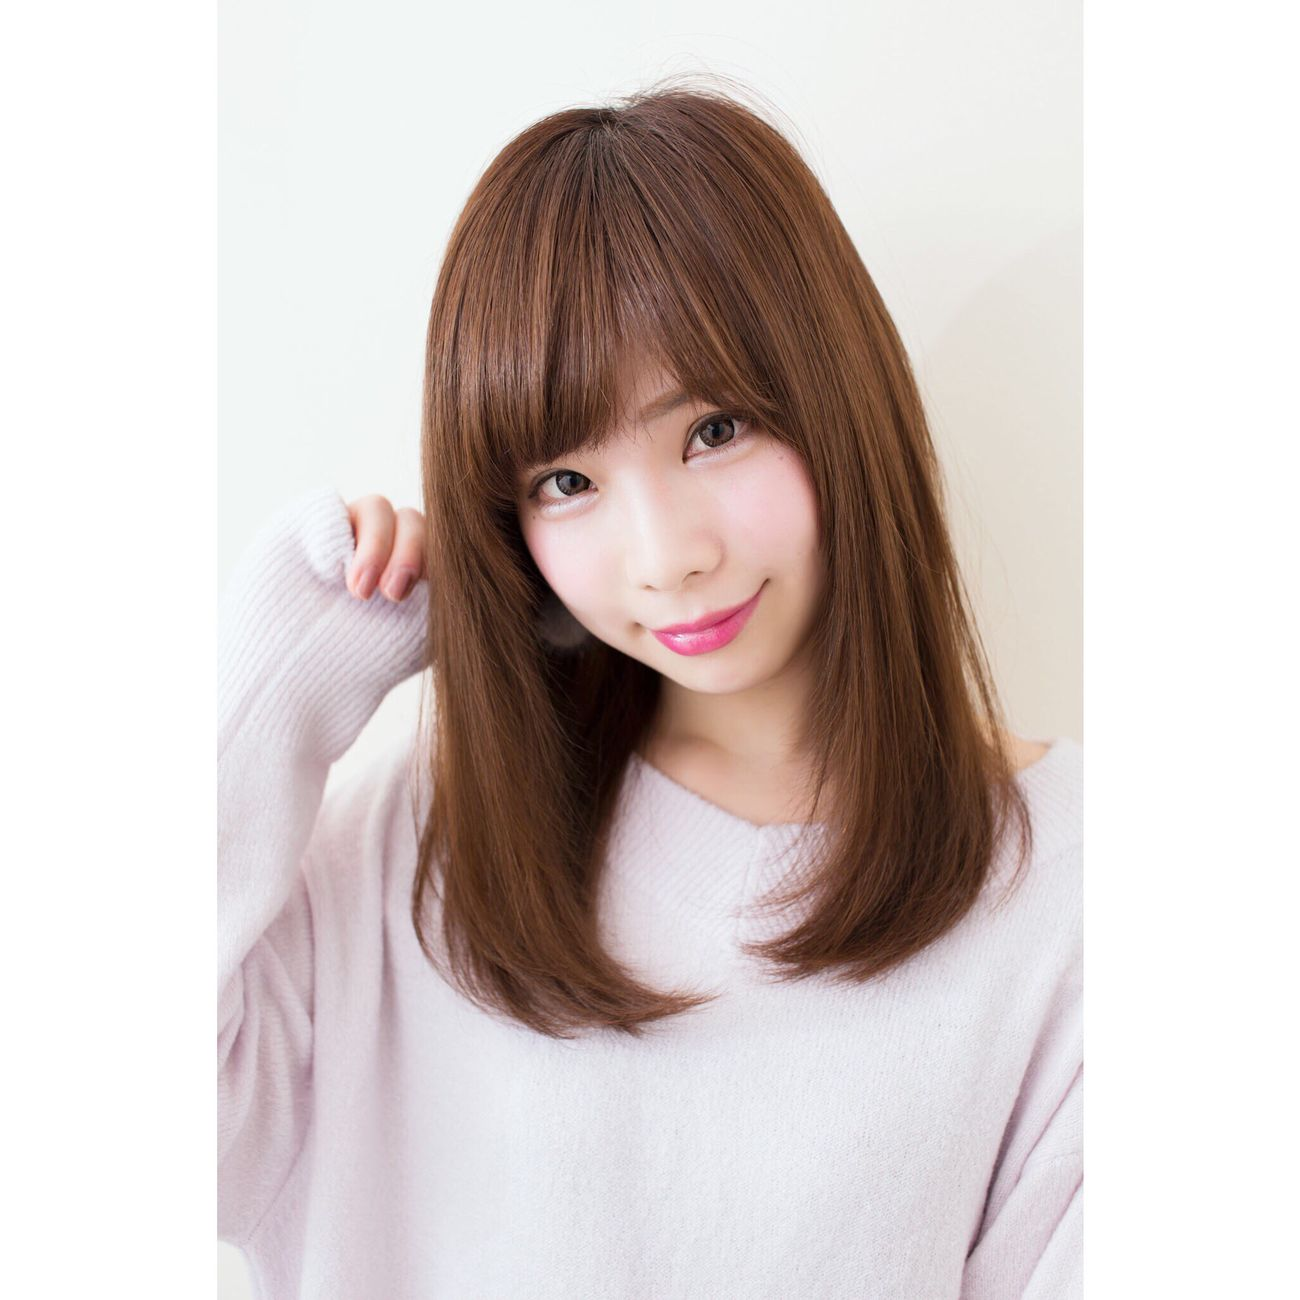 Hairstyle Kokubutoshinobu Japanese Girl Japan Beauty Girl Beauty Hair サロンモデル 箕面 美容室